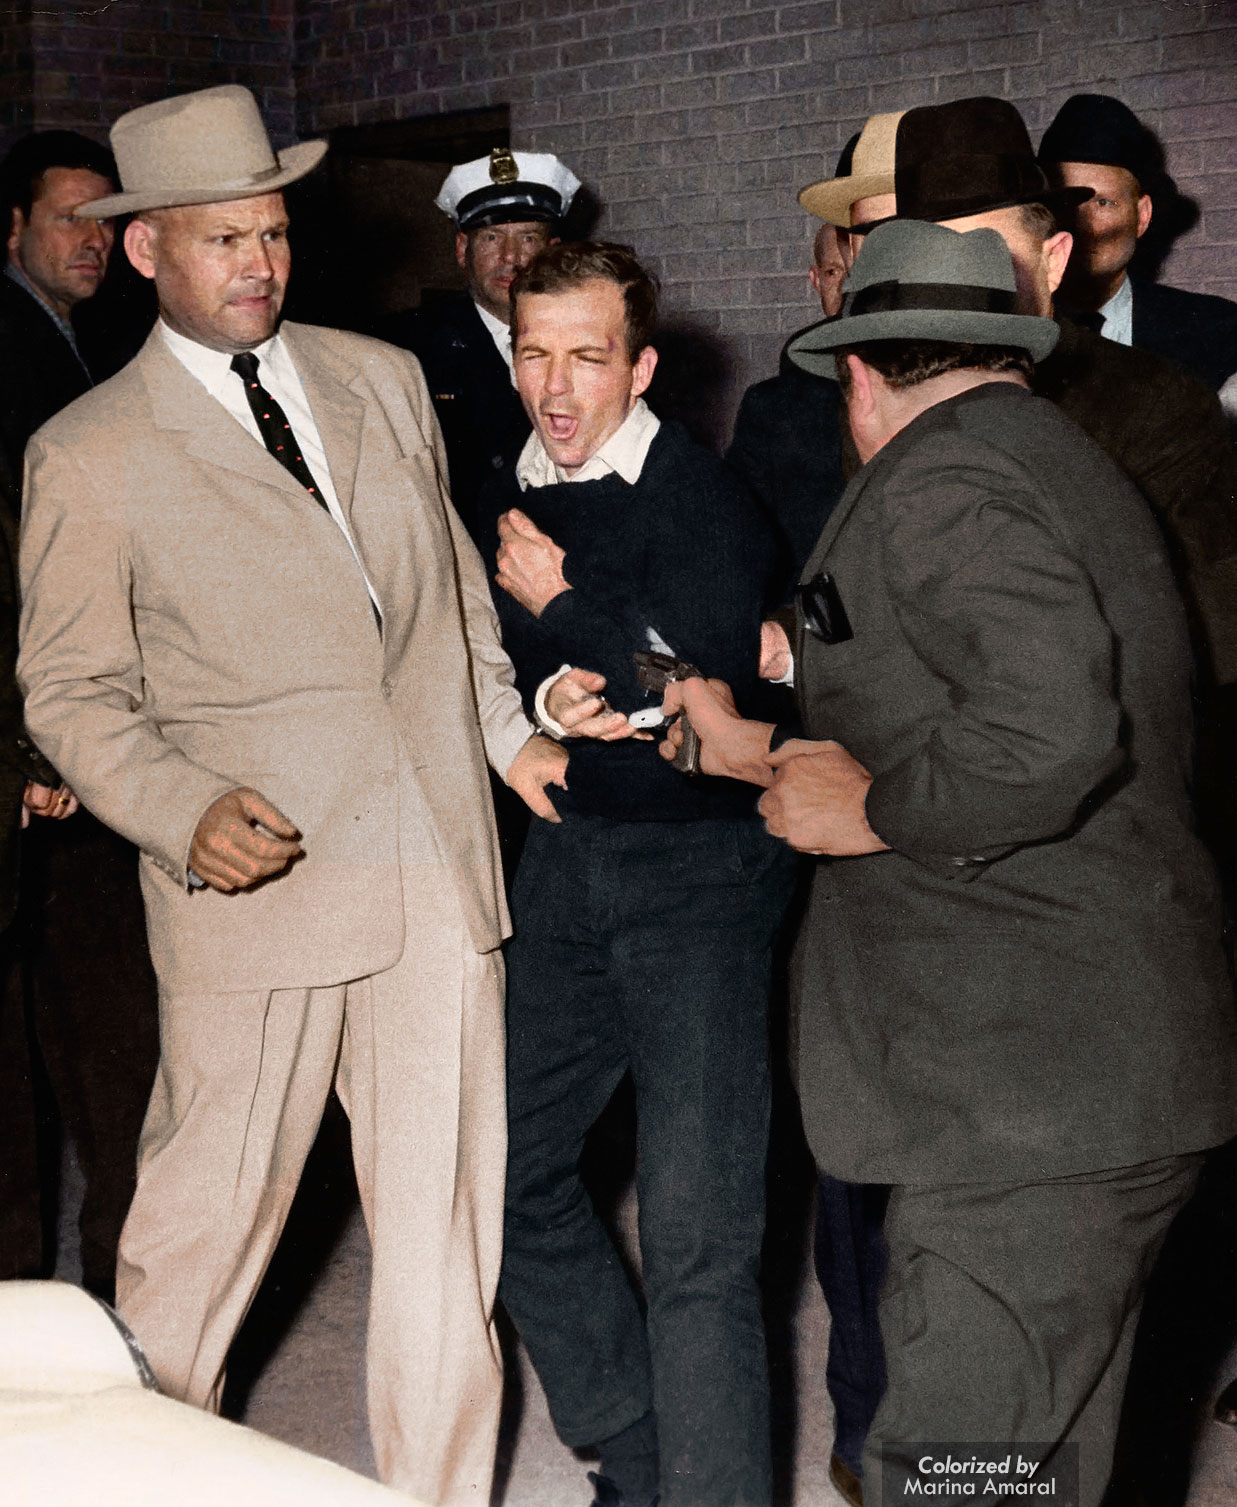 16 -  Lee Harvey Oswald the moment he was assassinated